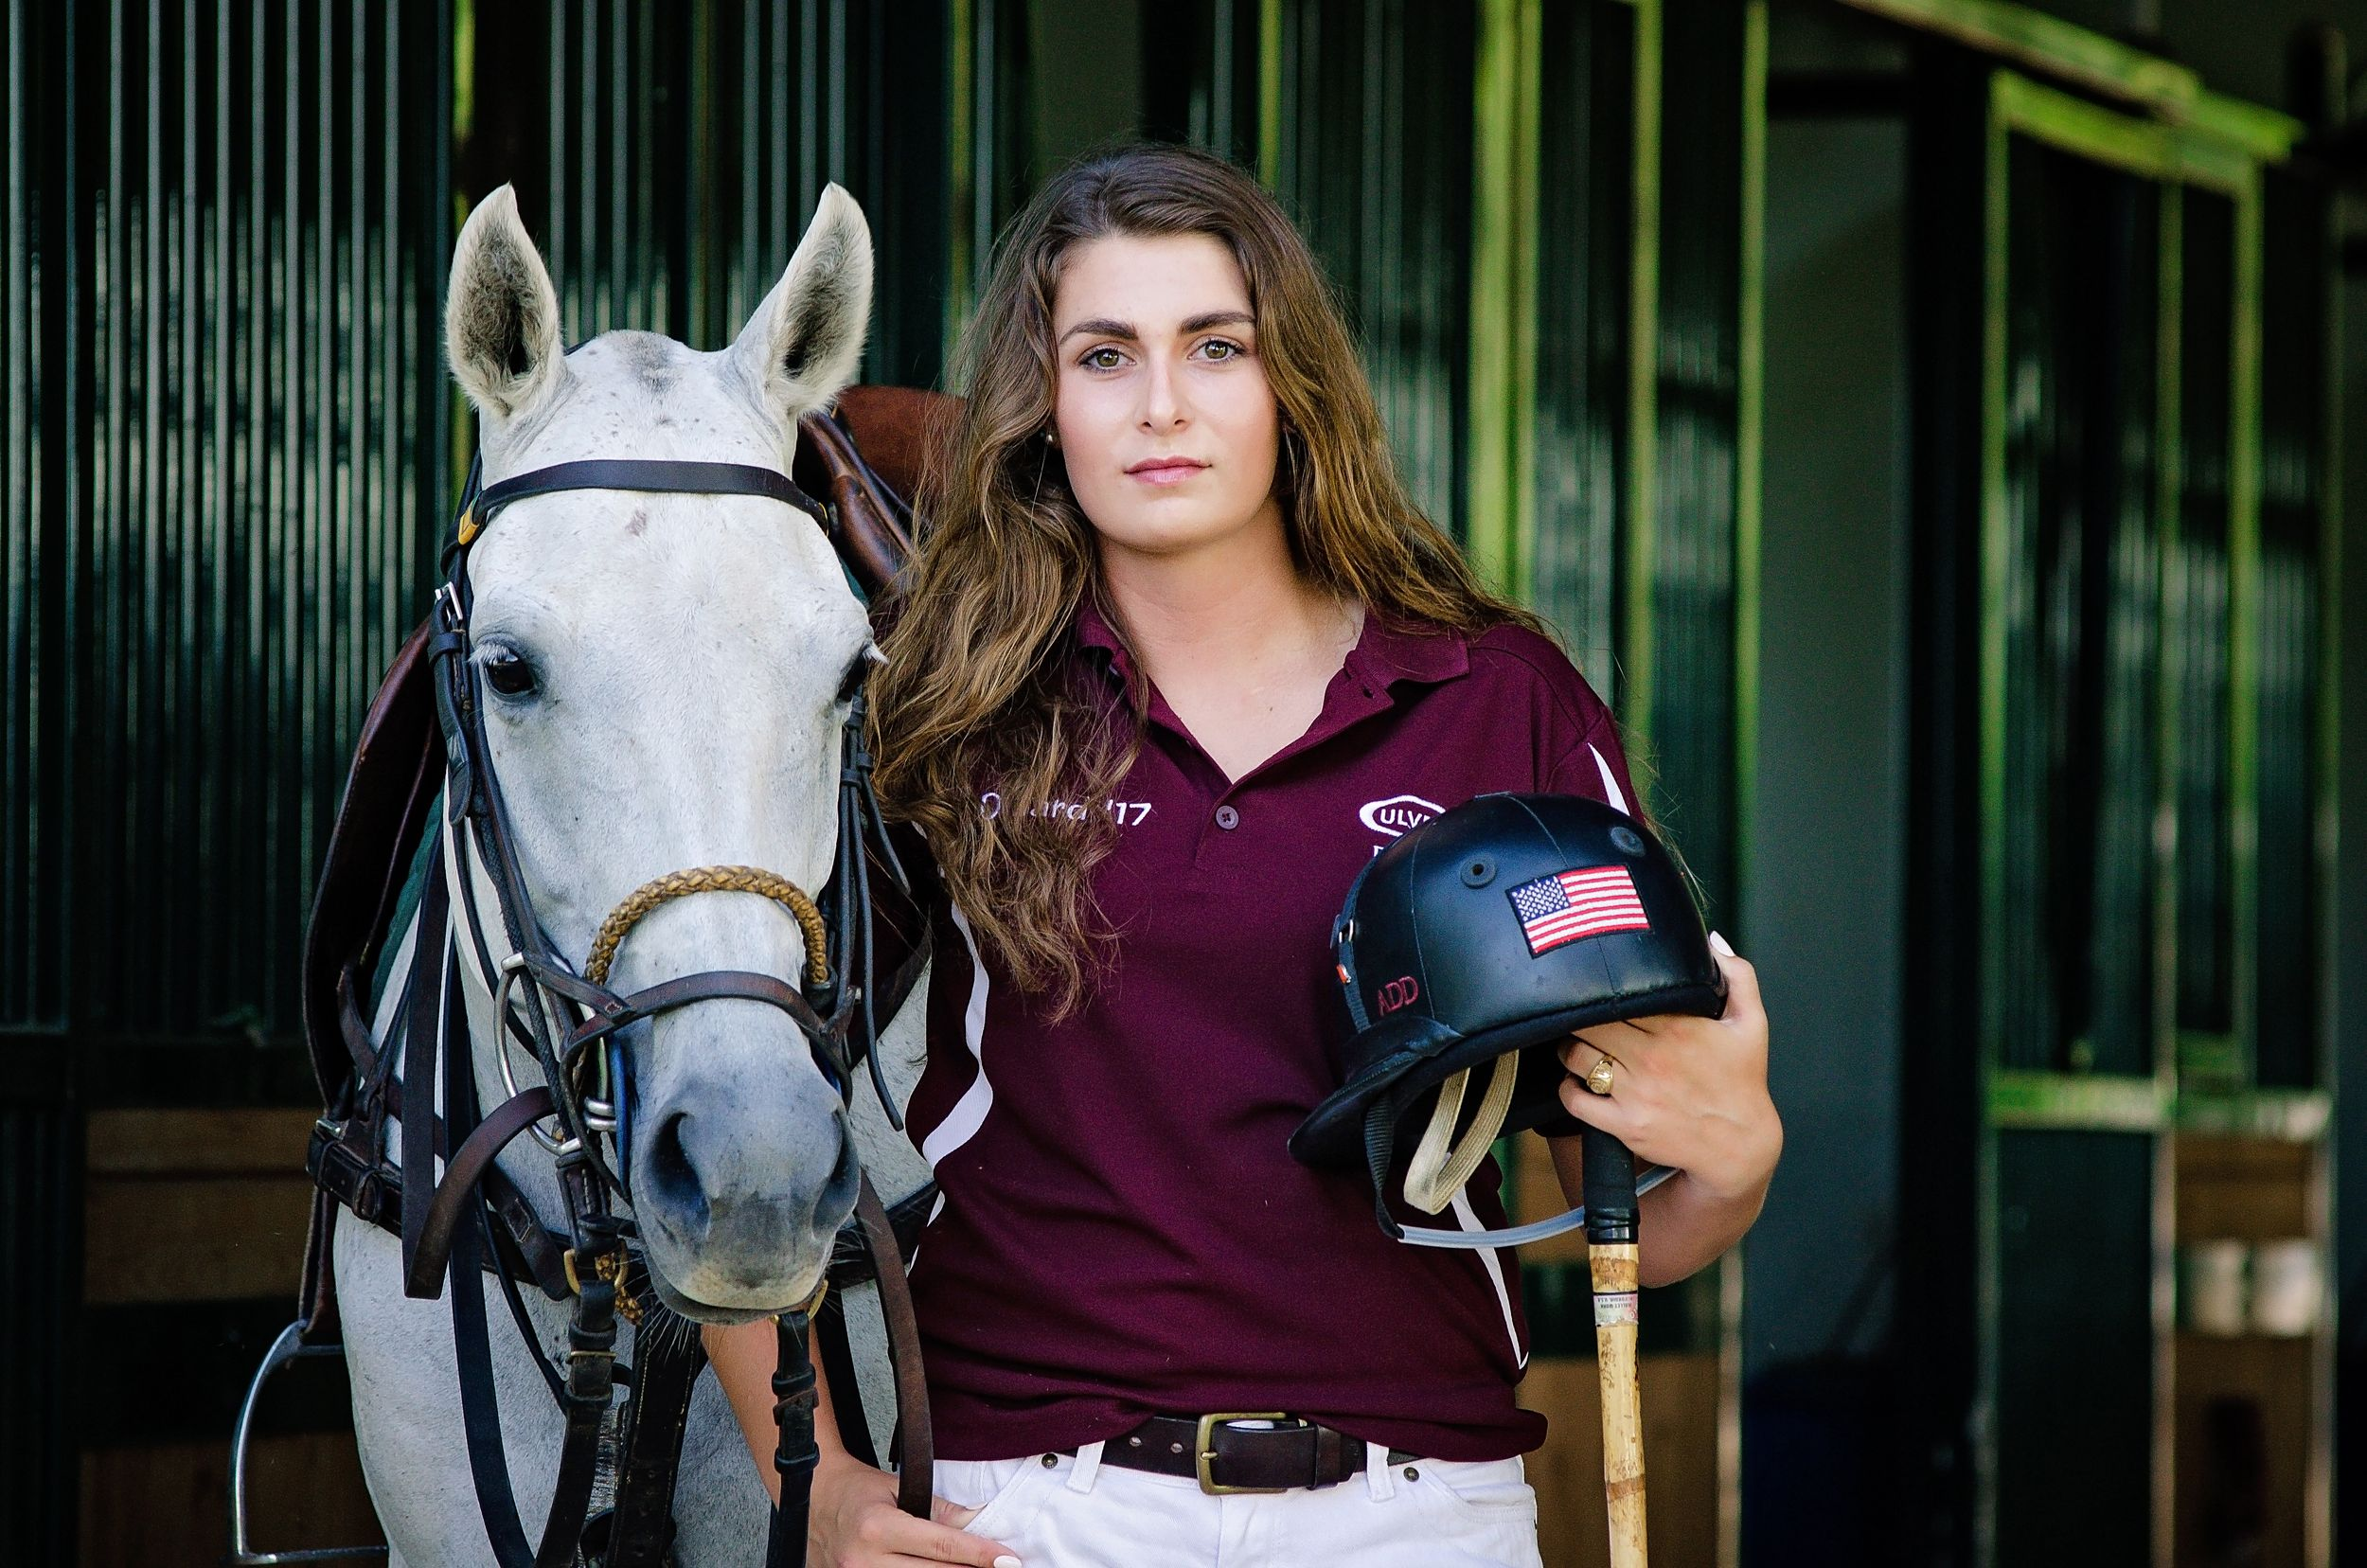 Polo player and thoroughbred mare horse